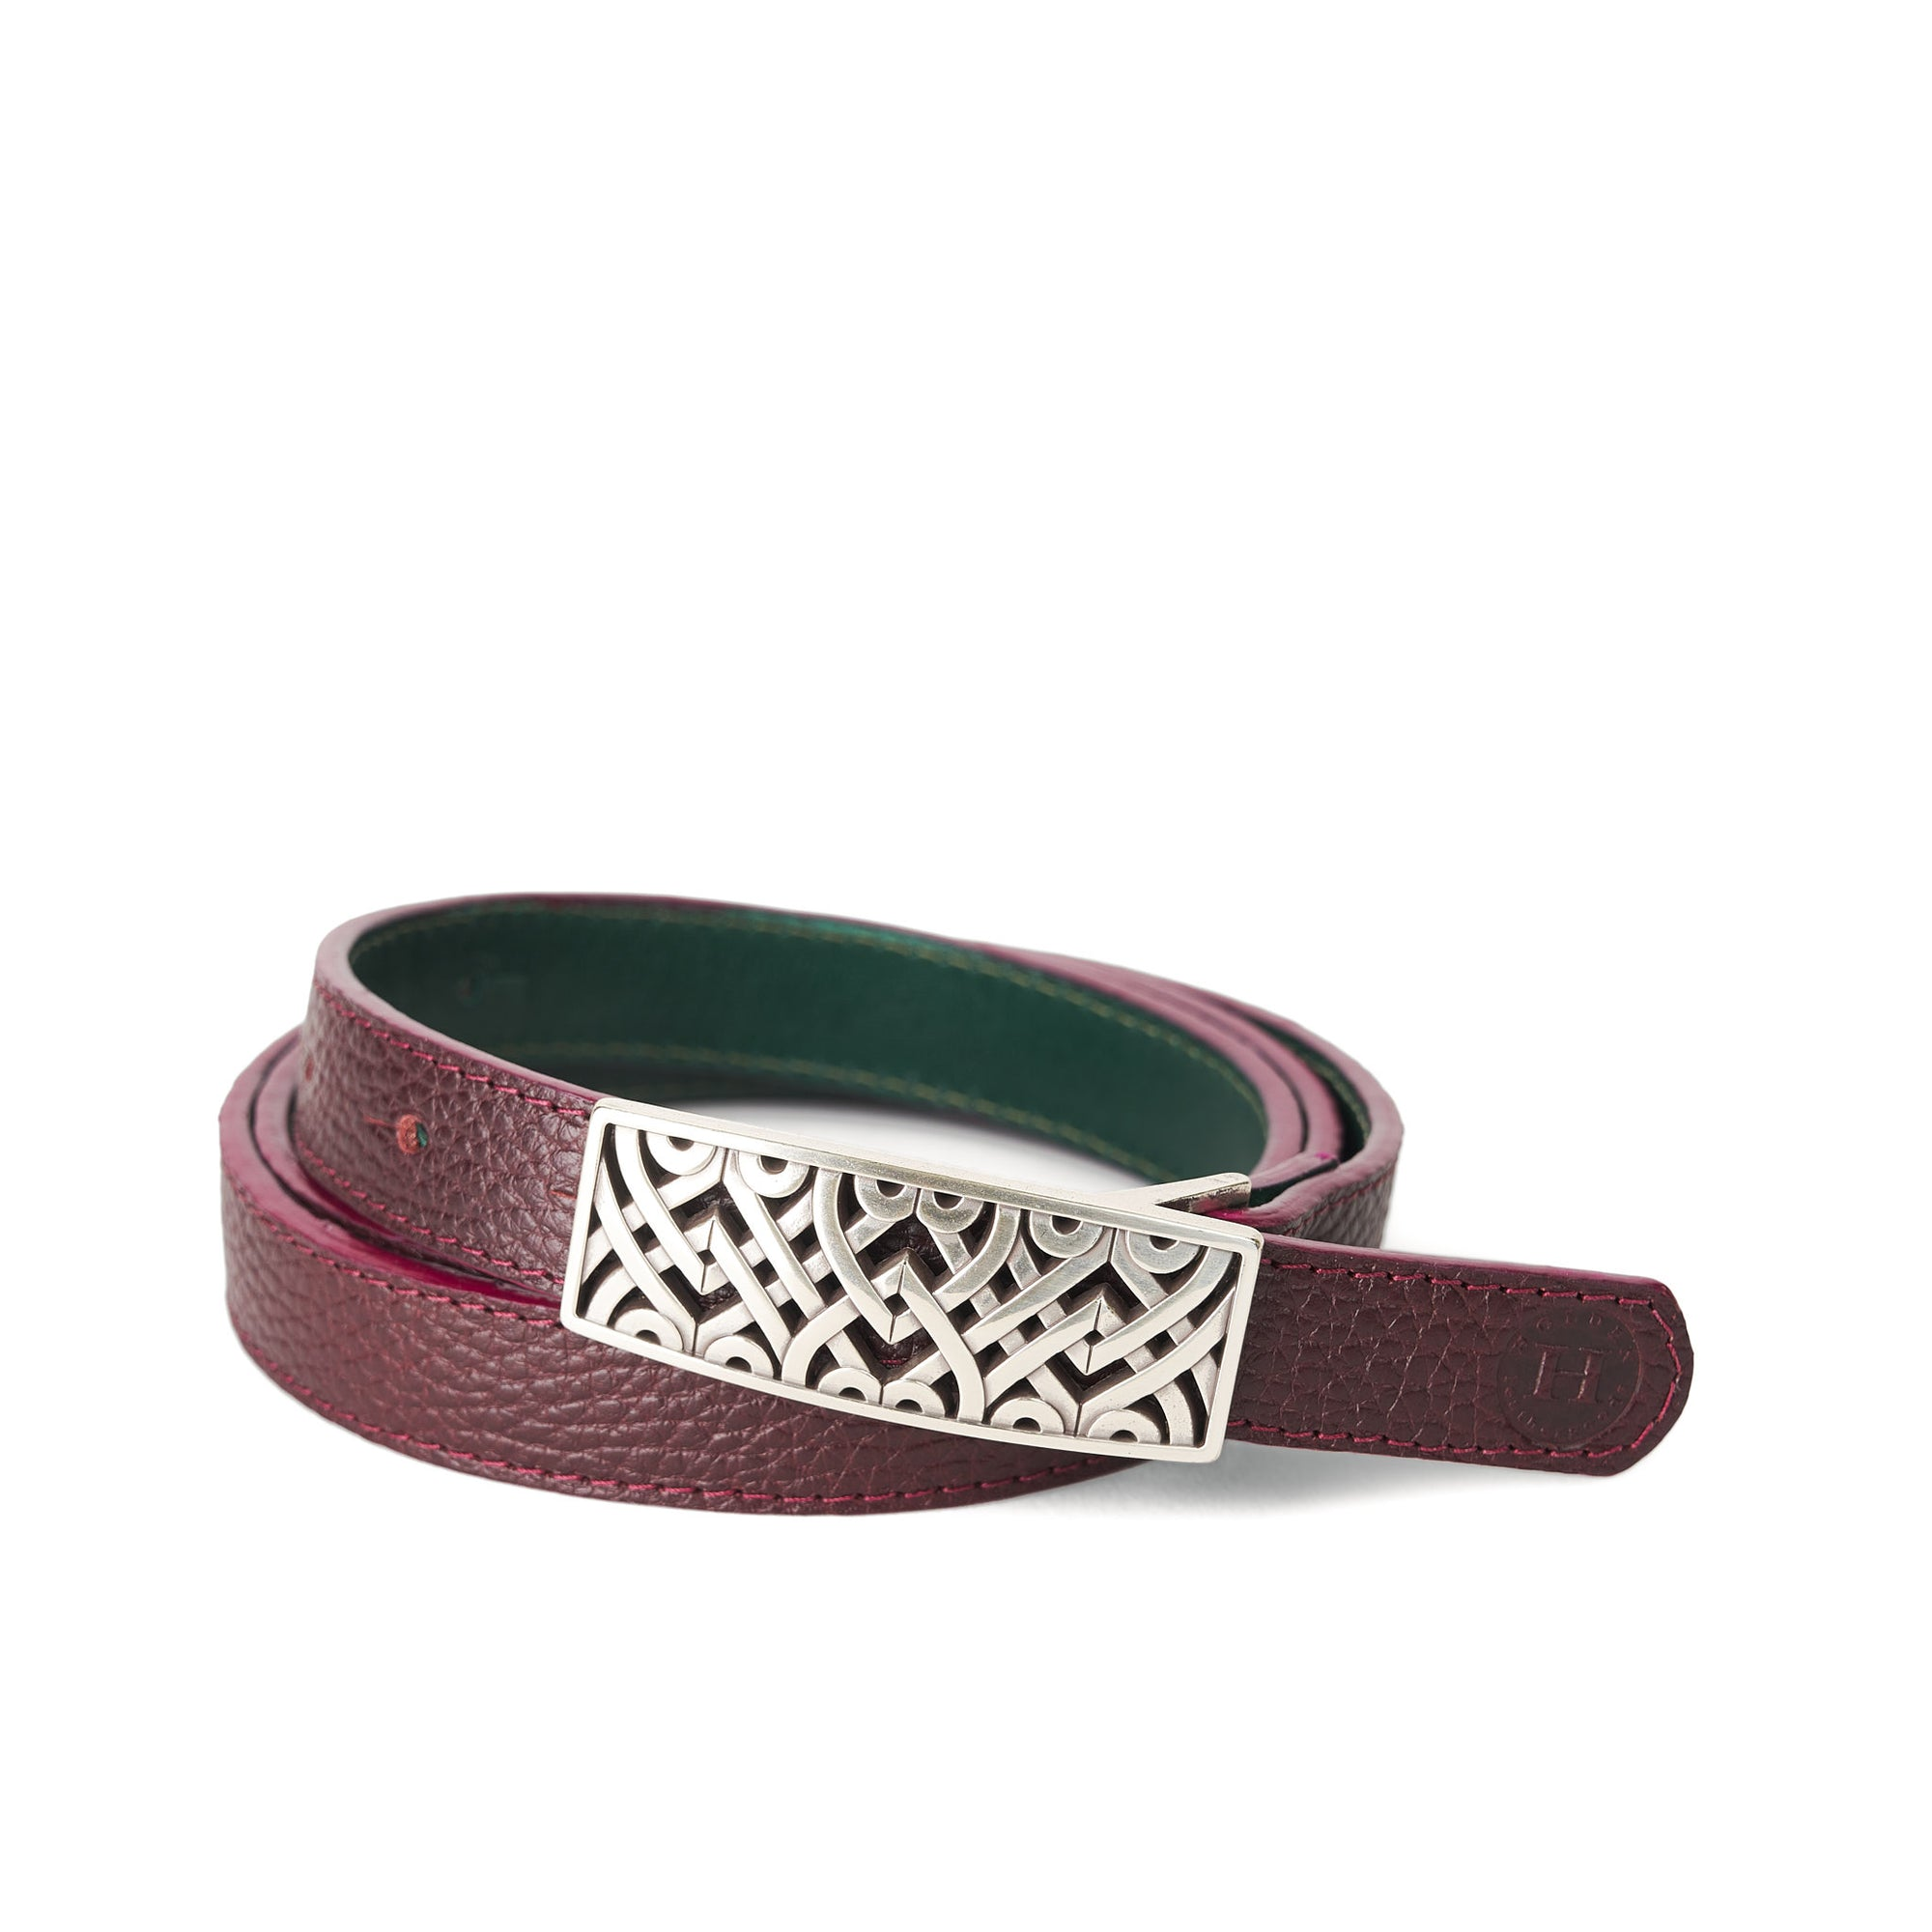 Holden Dúnbeg Celtic Belt - Burgundy